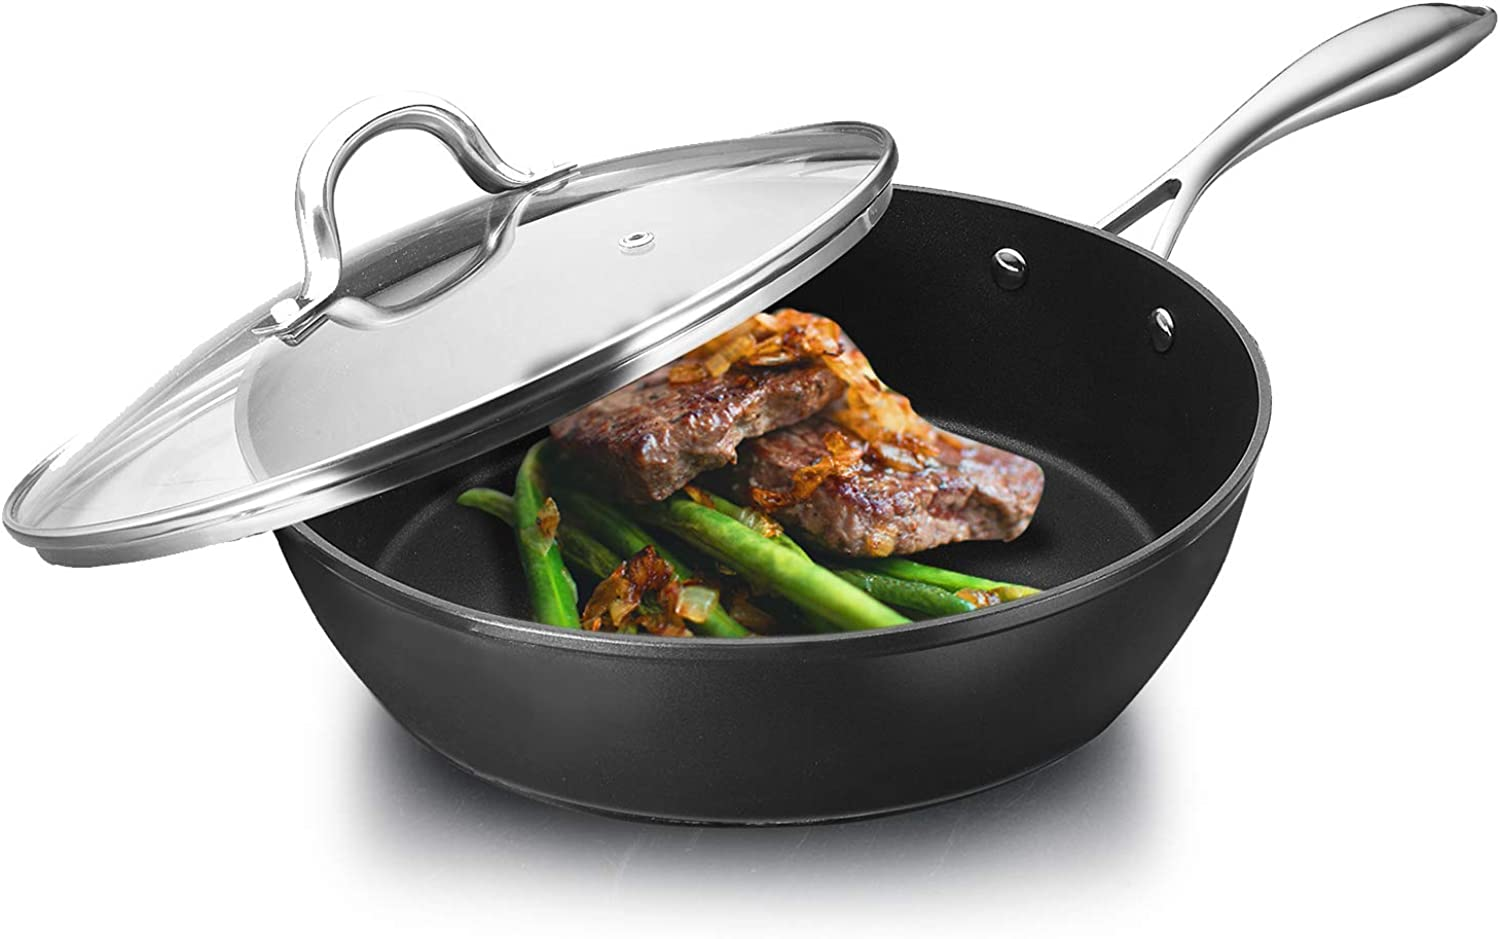 COOKER KING Nonstick Frying Pan with Lid, Induction Compatible, Dishwasher Safe, Oven Safe, Fast Heating, Anti-Warp Base, Stainless Steel Handle, 11-Inch Multi-Function Nonstick Skillet with Lid